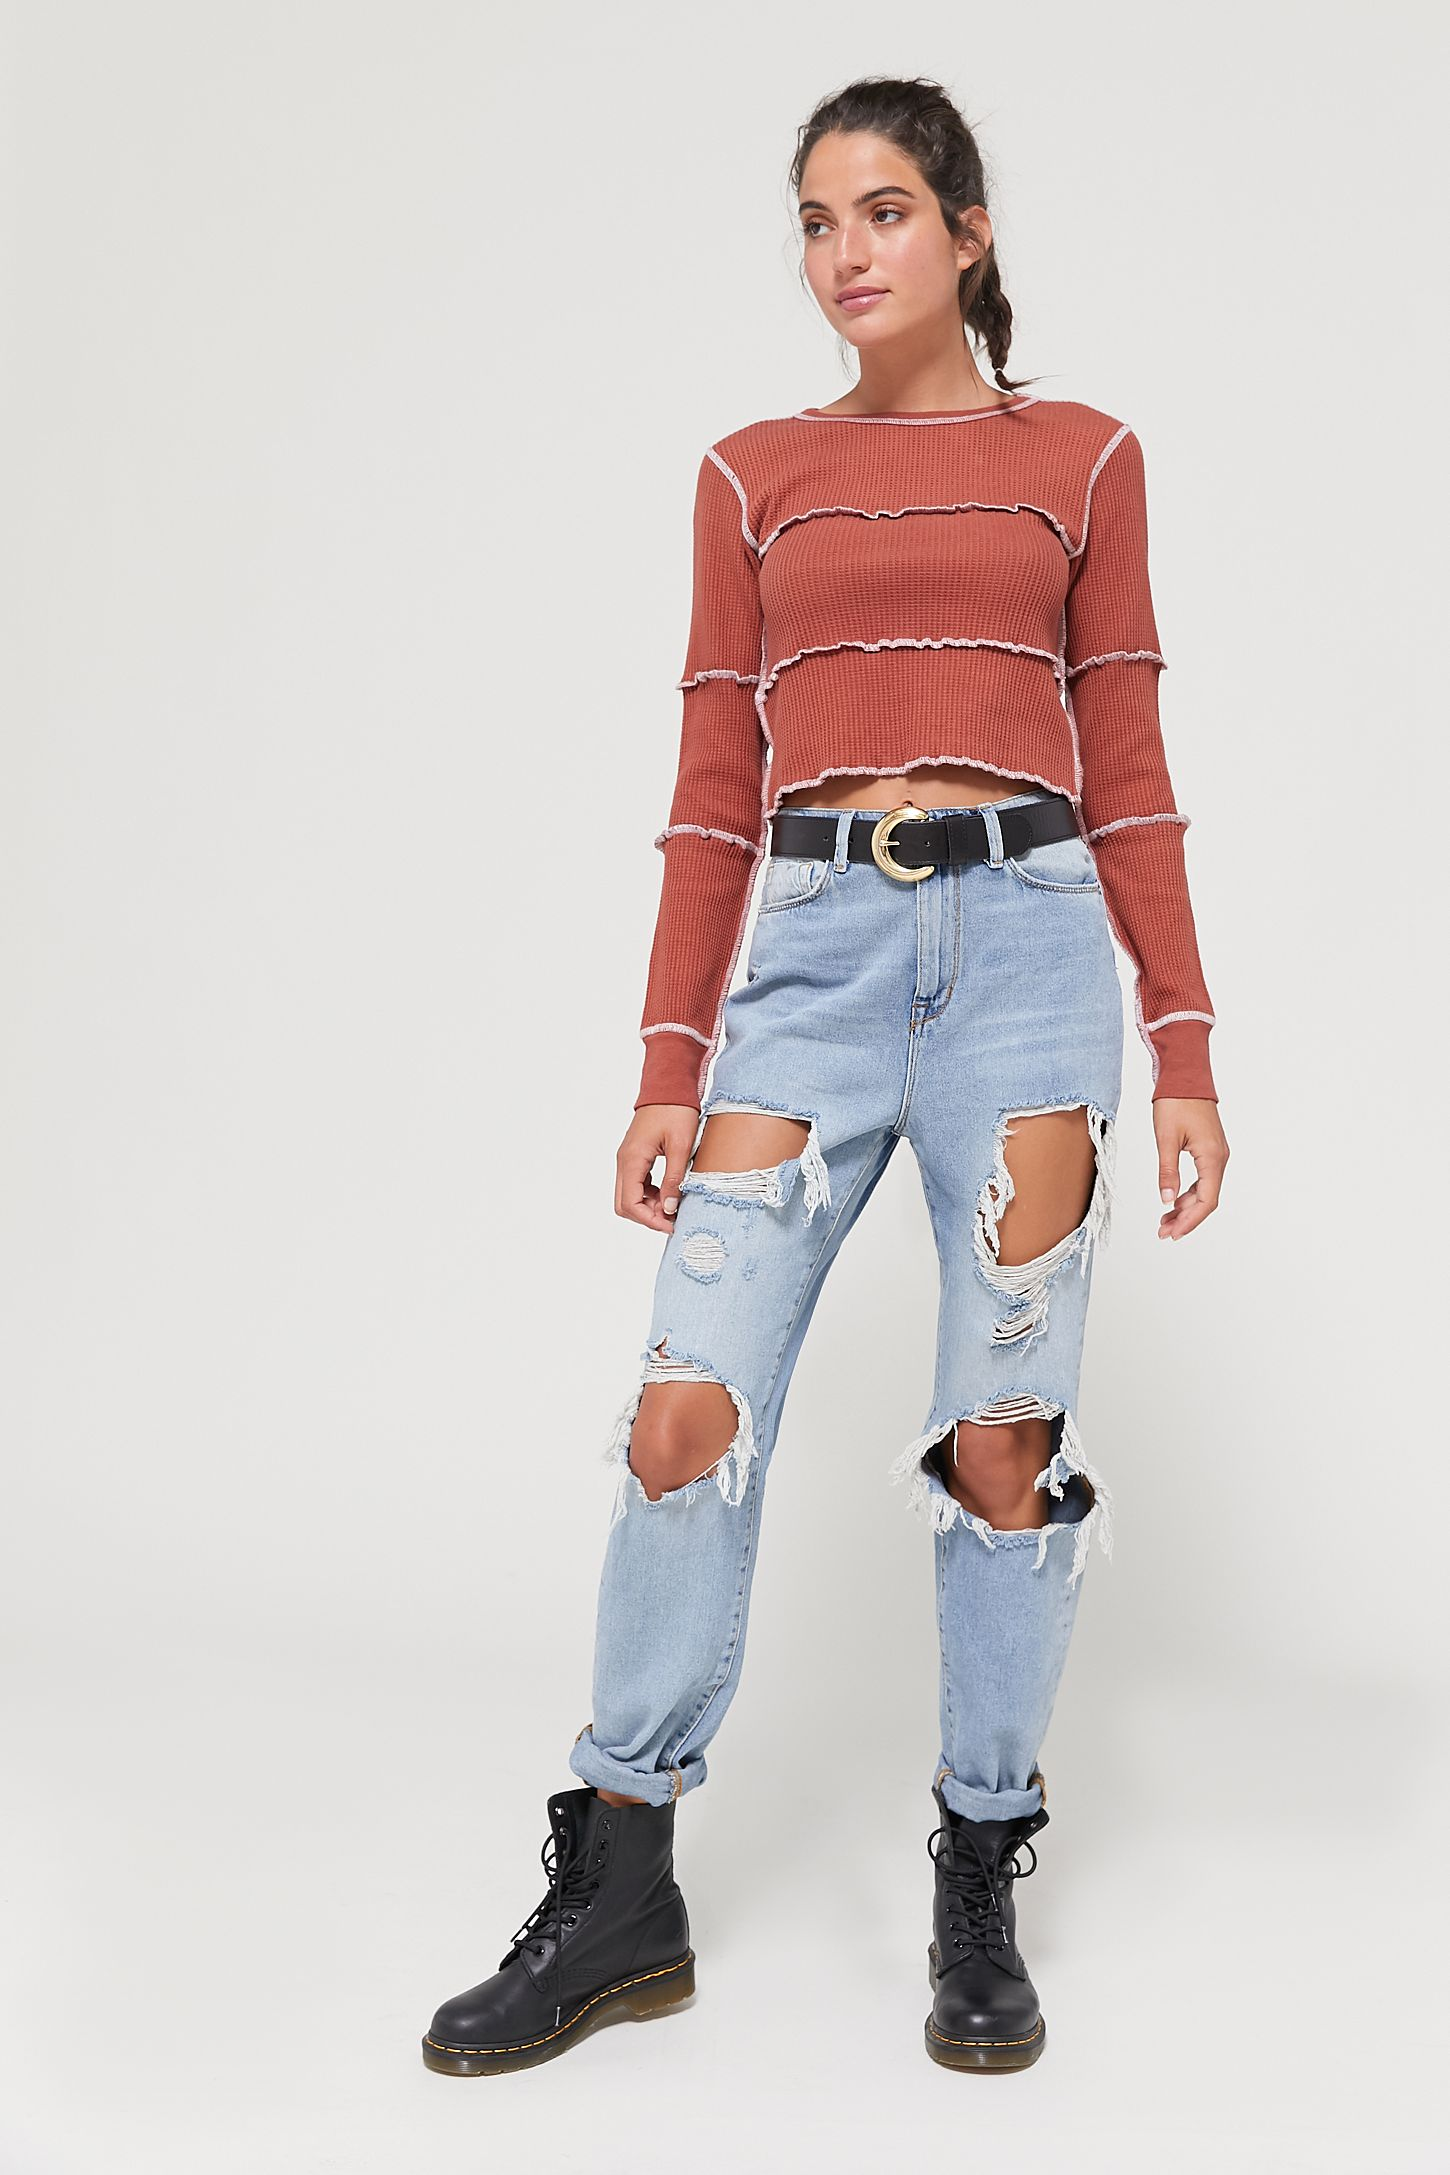 580db6e347e1c BDG High-Rise Mom Jean - Destroyed Light Wash | Urban Outfitters